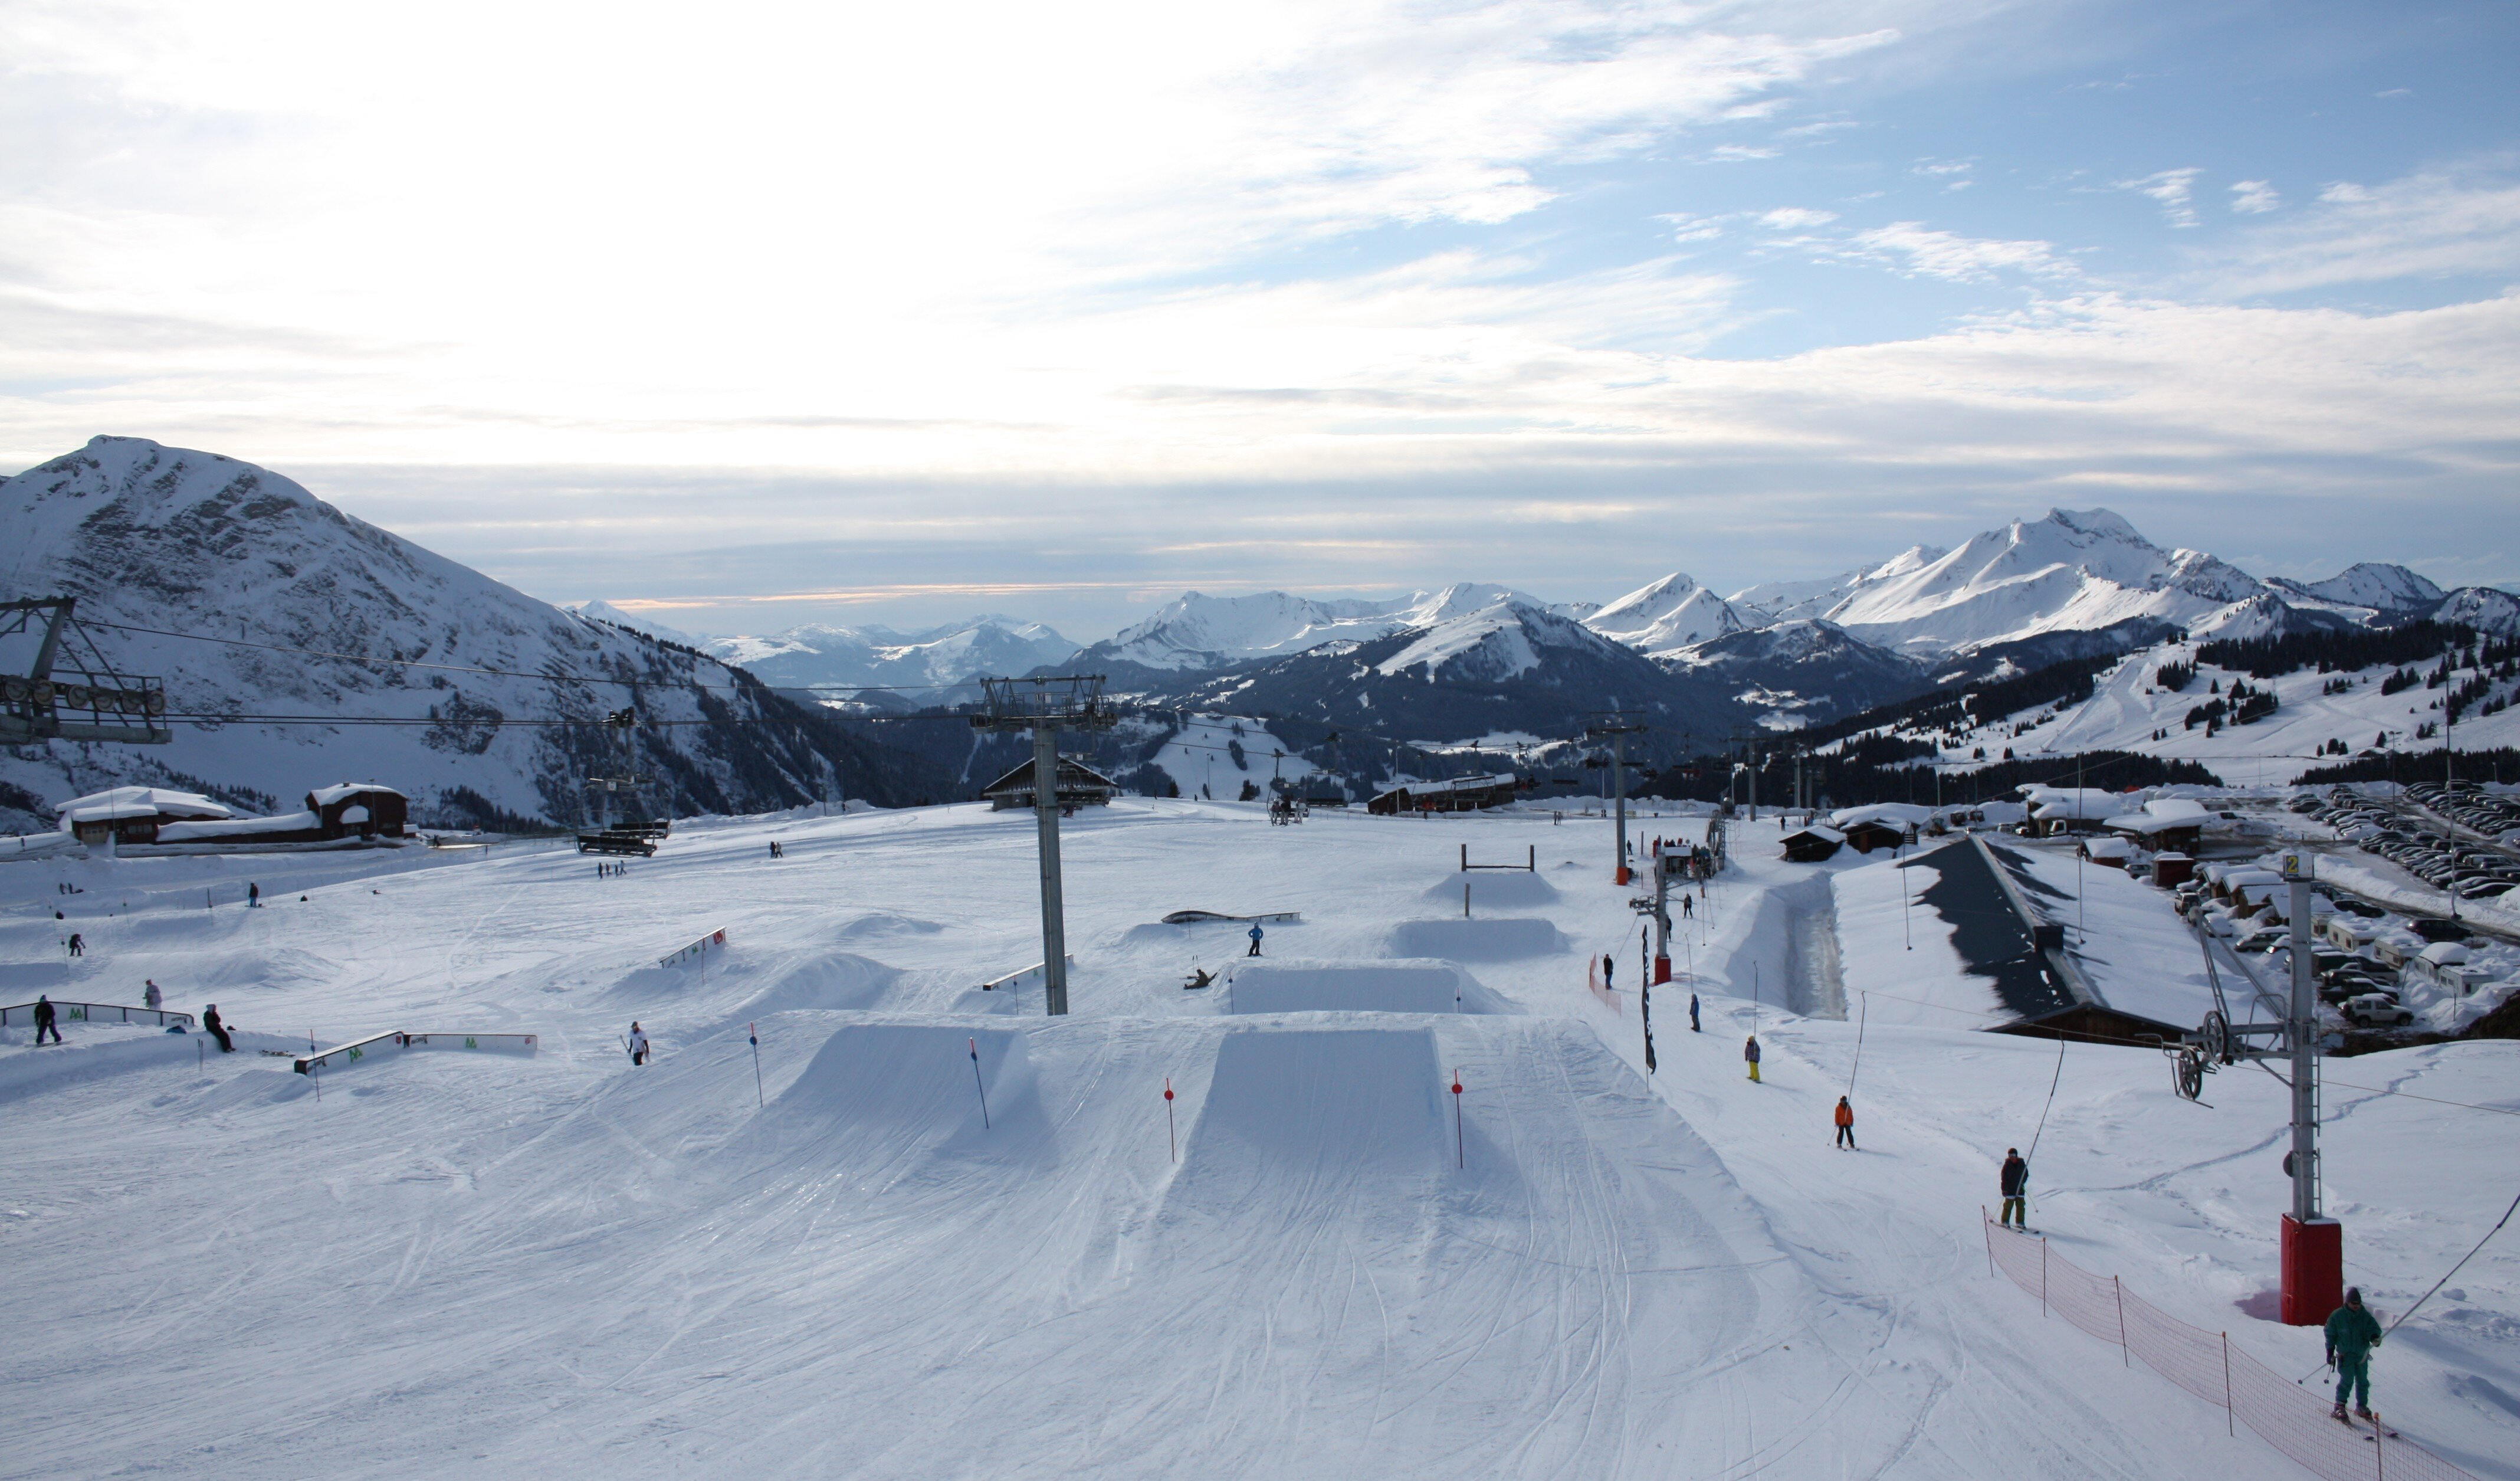 Photograph of snow park avoriaz